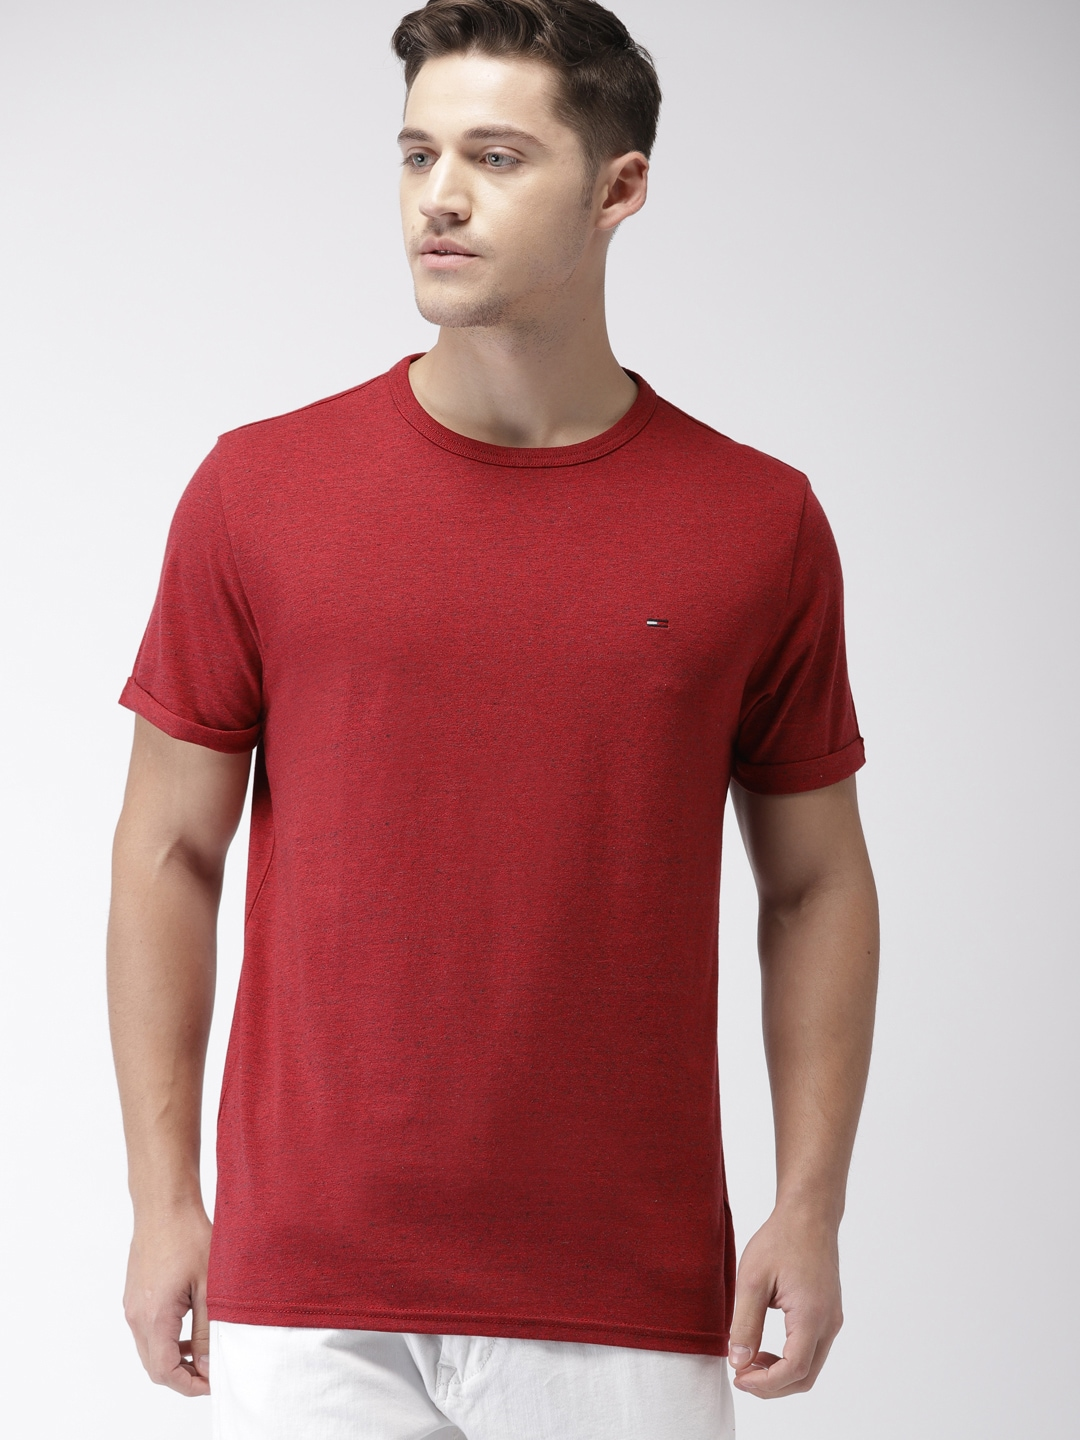 27c9d704a Buy Puma Men Maroon Printed VK Polo T Shirt - Tshirts for Men ...